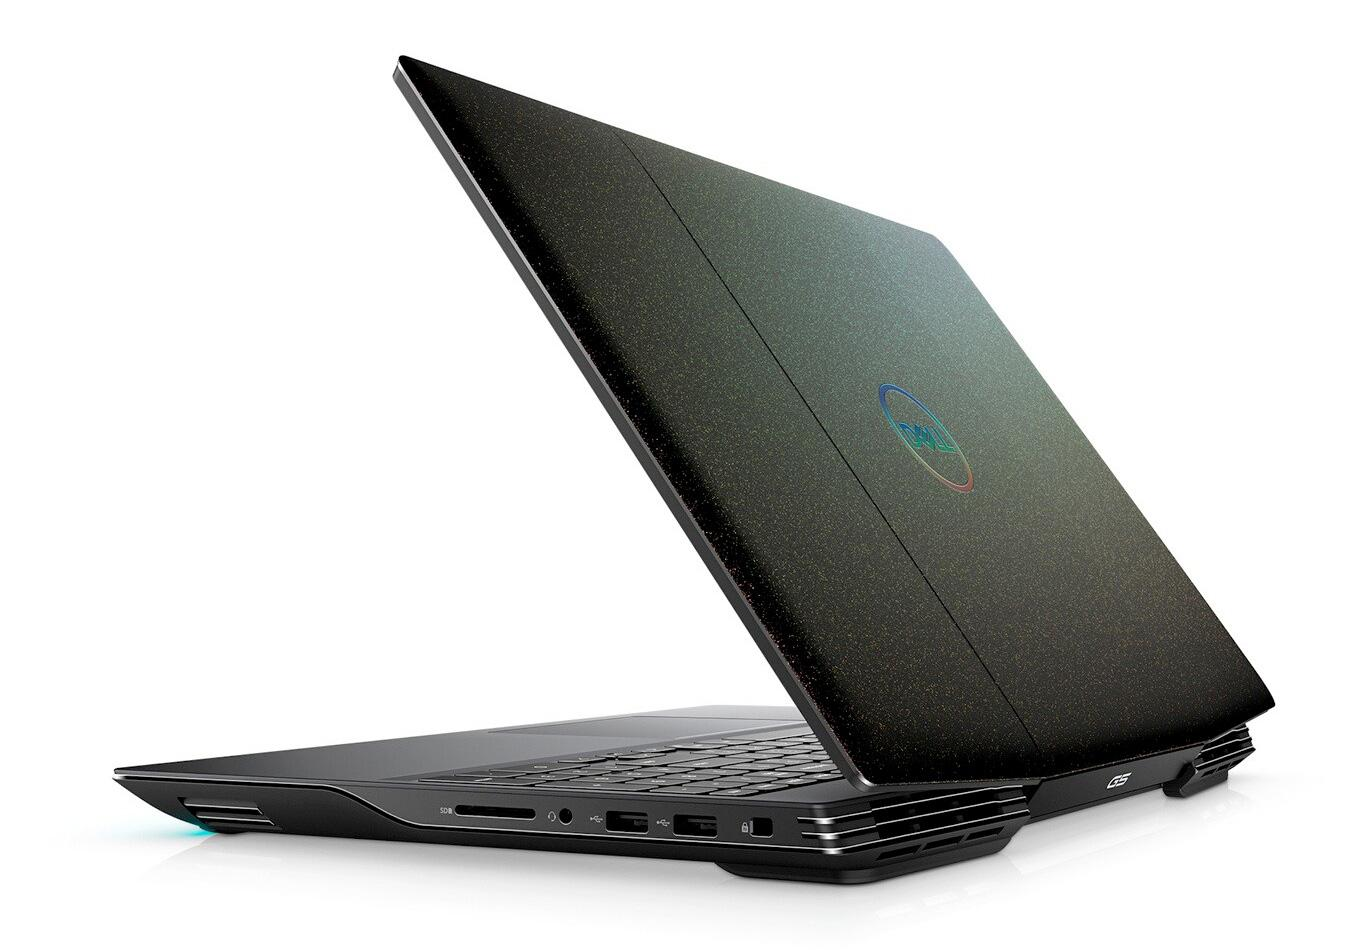 Ordinateur portable Dell Inspiron G5 15 5500-252 Noir - RTX 2060, IPS 300Hz, SSD 1 To, TB3 - photo 4